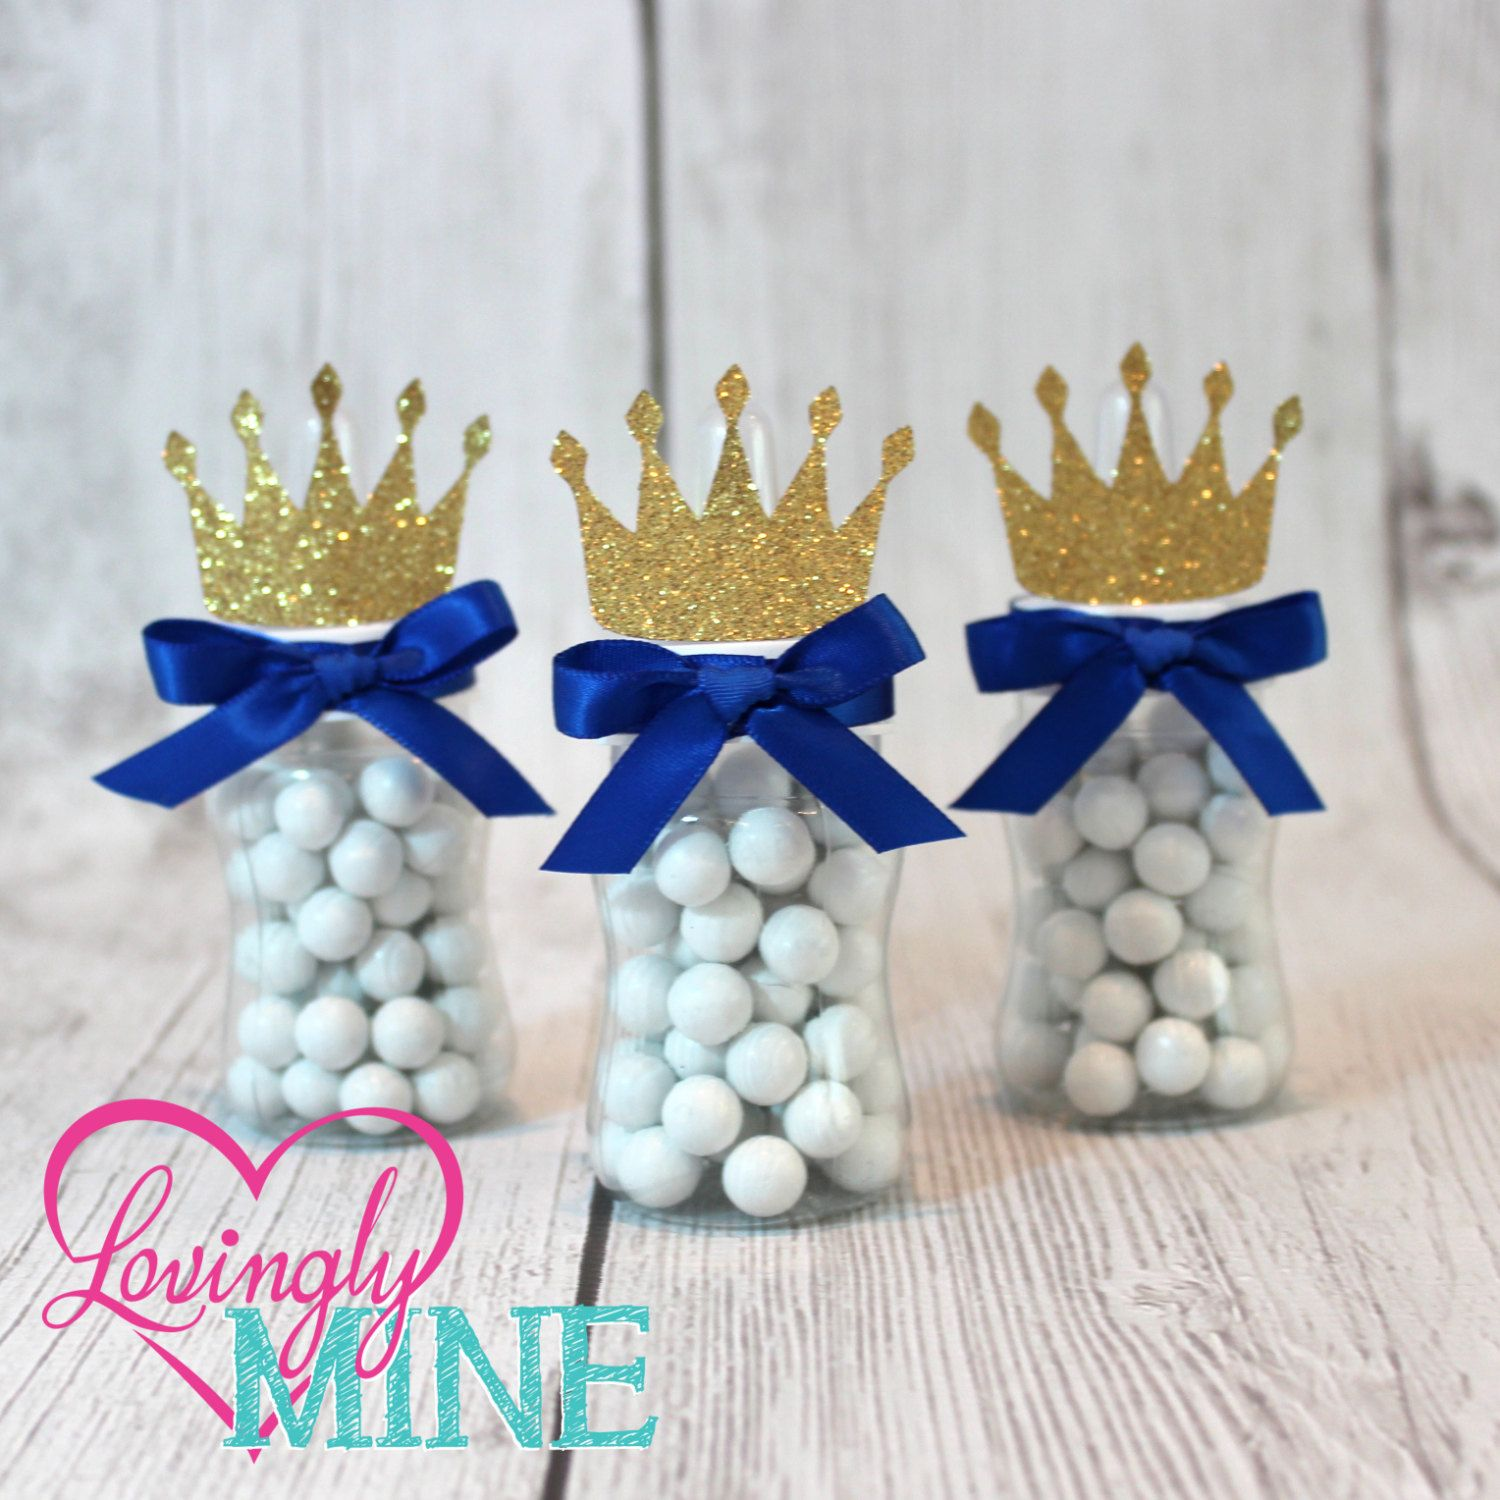 little prince baby bottle favors in royal blue u0026 glitter gold sold in sets of 12 baby shower favors additional colors available